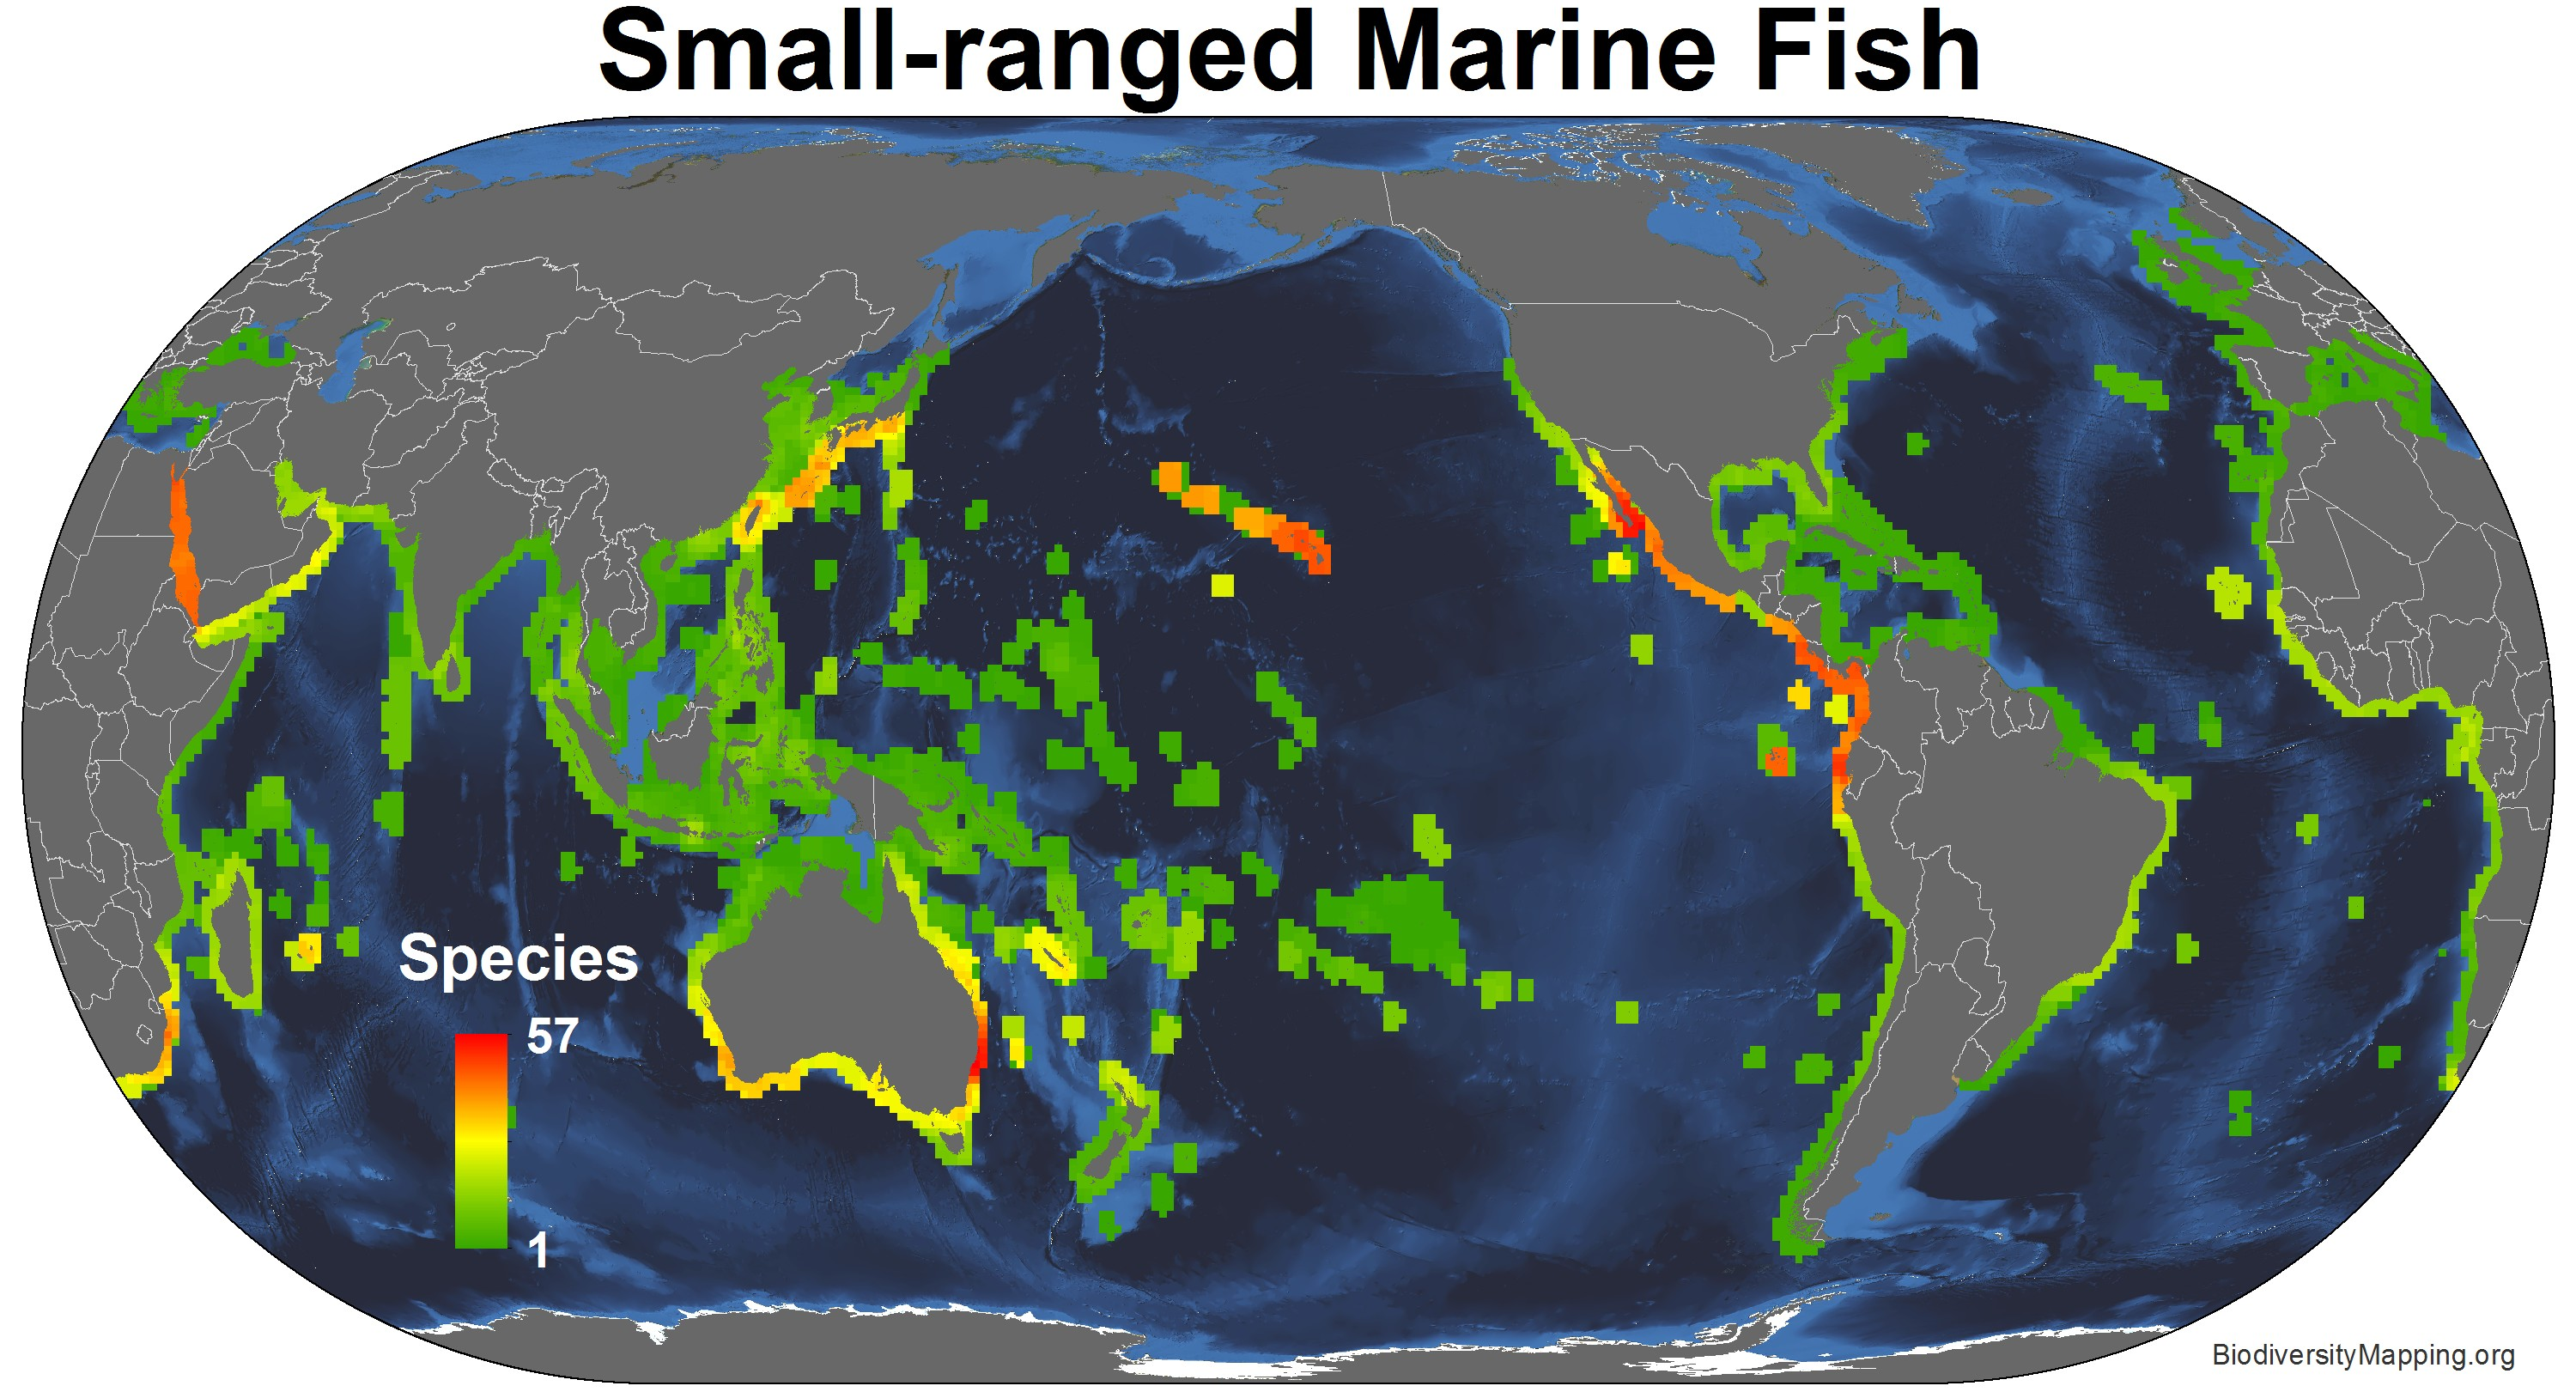 marine_fish_small_ranged